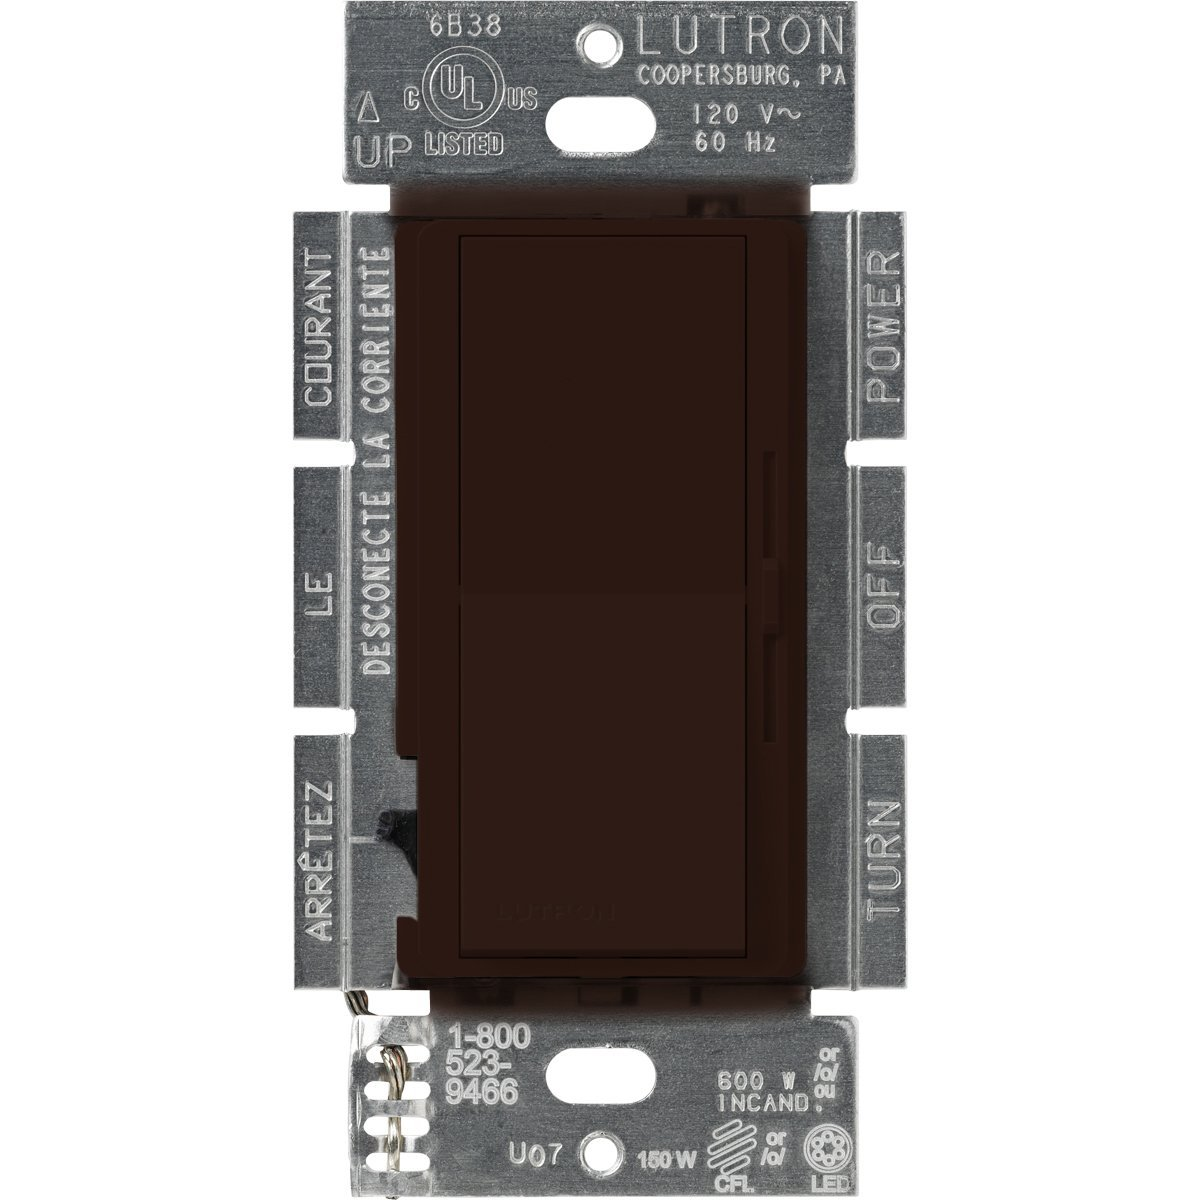 Lutron DVCL-153P-BR Diva Dimmable CFL/LED Dimmer, Brown